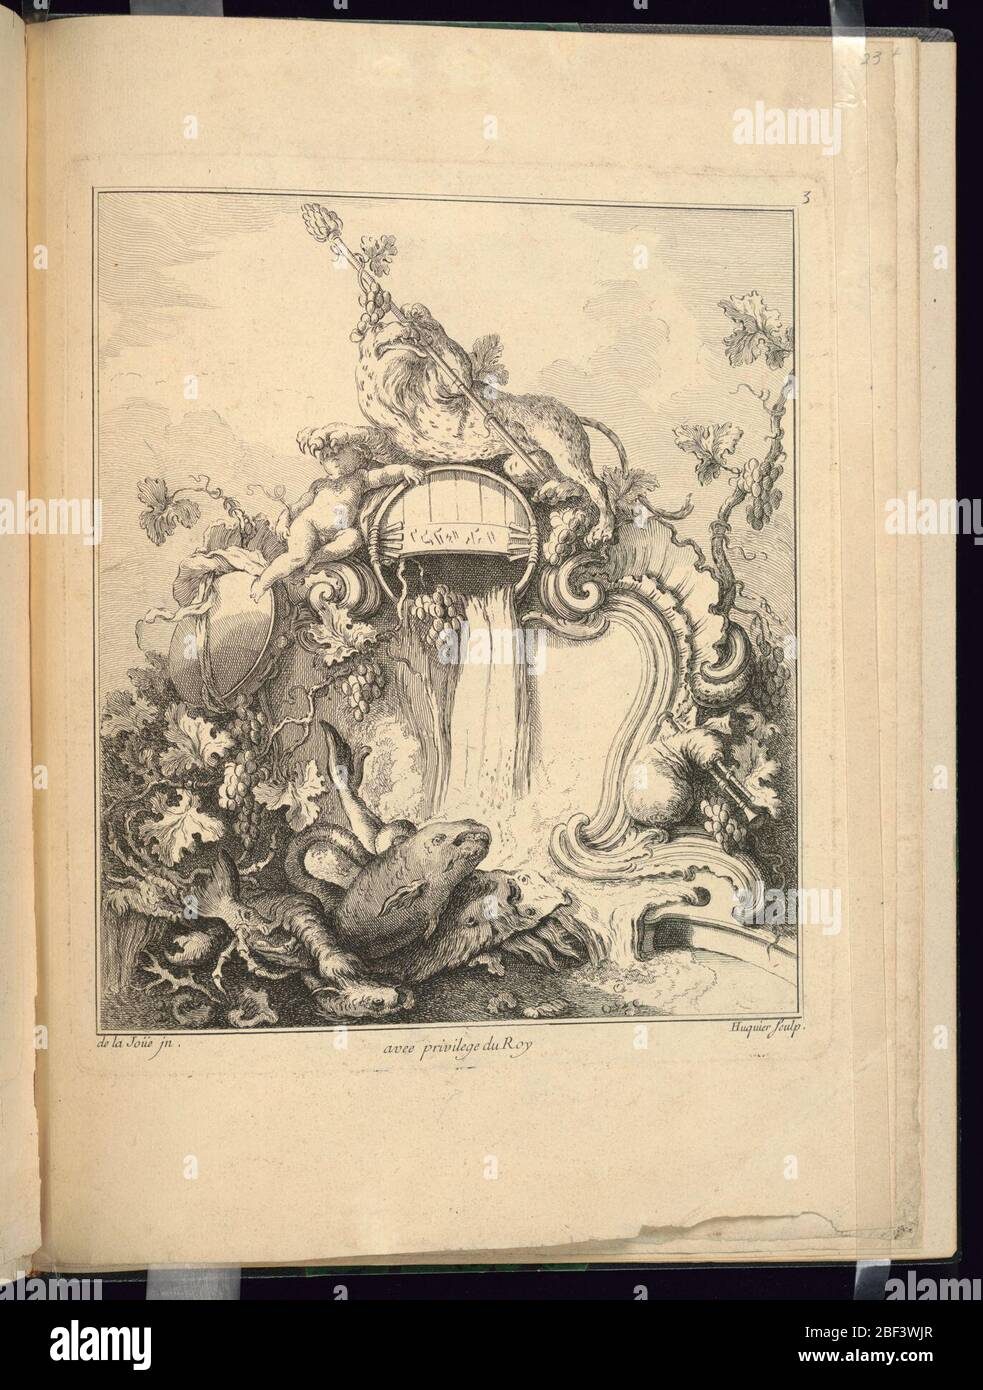 Design for a Cartouche Surmounted by a Tiger. A tiger holding a thyrsus atop a barrel that is probably pouring wine, his paw resting on the head of a putto. Clusters of grapes and leaves decorate the cartouche. Enormous fish are at bottom foreground. Stock Photo